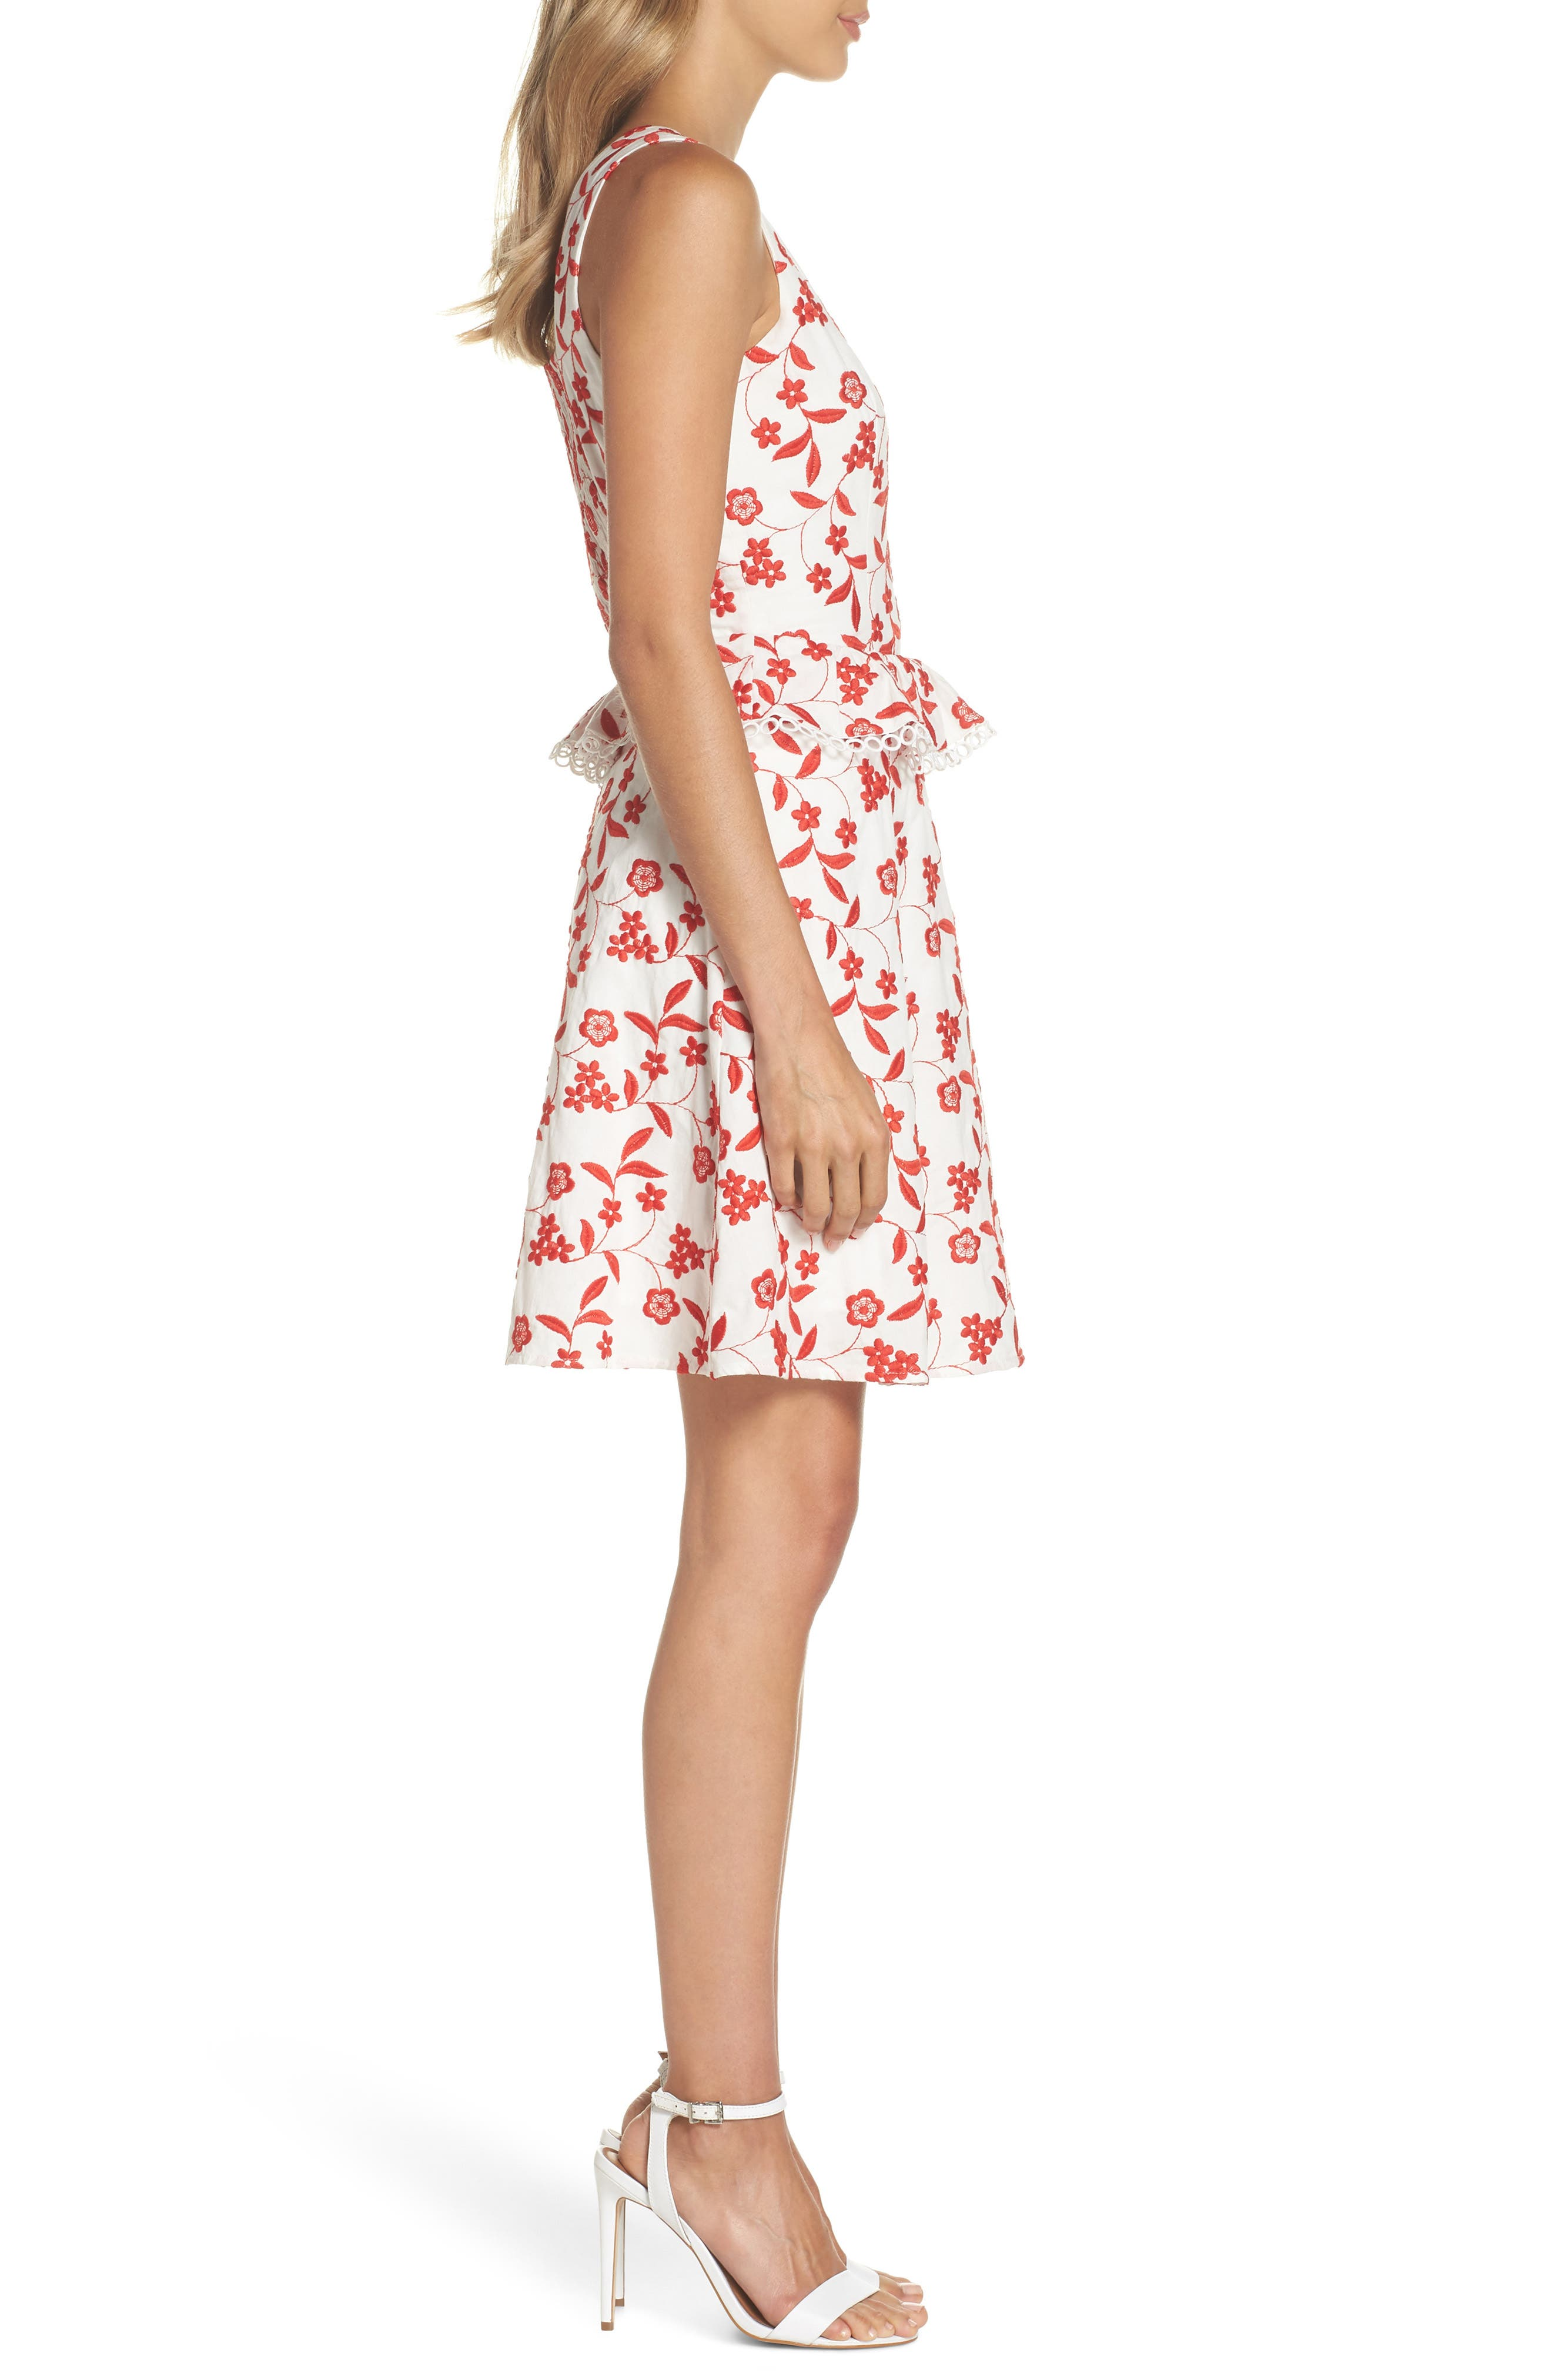 Aubrey Embroidered Cotton Dress,                             Alternate thumbnail 3, color,                             Flame